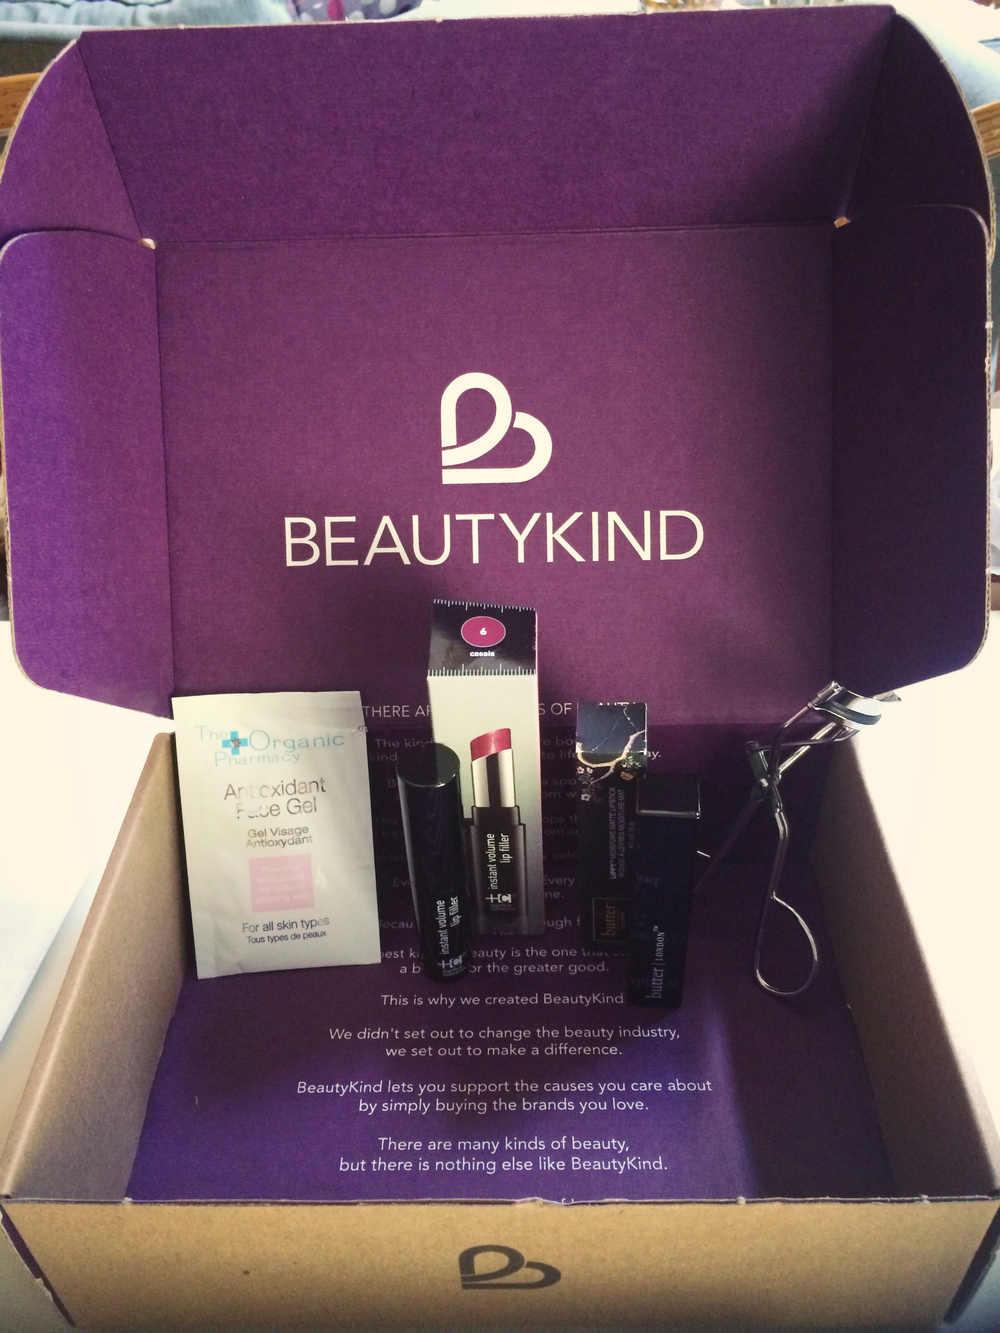 About Beauty Kind    BeautyKind  is a new kind of online retailer that allows you to buy the brands you love and discover new favorites, all while supporting the cause of your choice.   BeautyKind  features a collection of prestige beauty products including some of the best brands in makeup, skincare, fragrances, body care, hair and nail products.  Where it's different is that BeautyKind allows you to direct 5% of your product purchase price to the cause of your choice, whether it's a national charity or one in your local community. The choice is yours.    Stay Stylish & Beautiful Chicago,     Katie